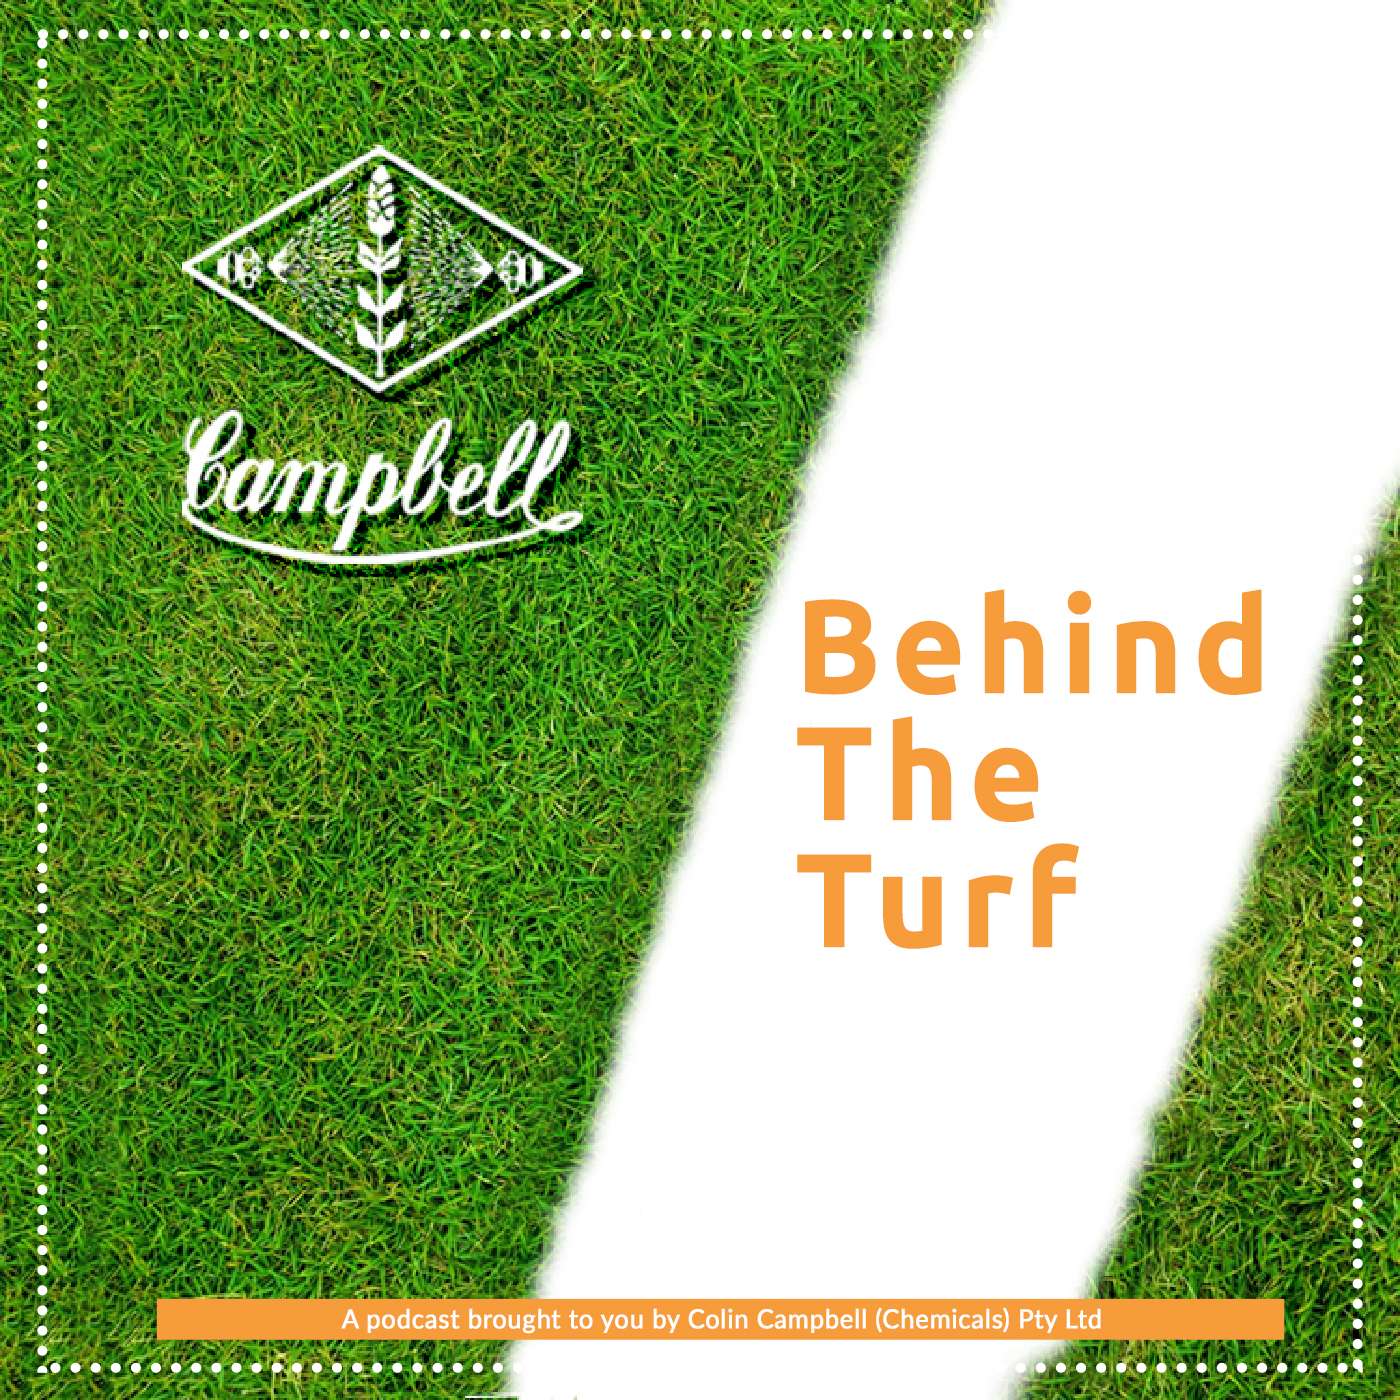 Behind The Turf brought to you by Nadeem from Colin Campbell Chemicals show art